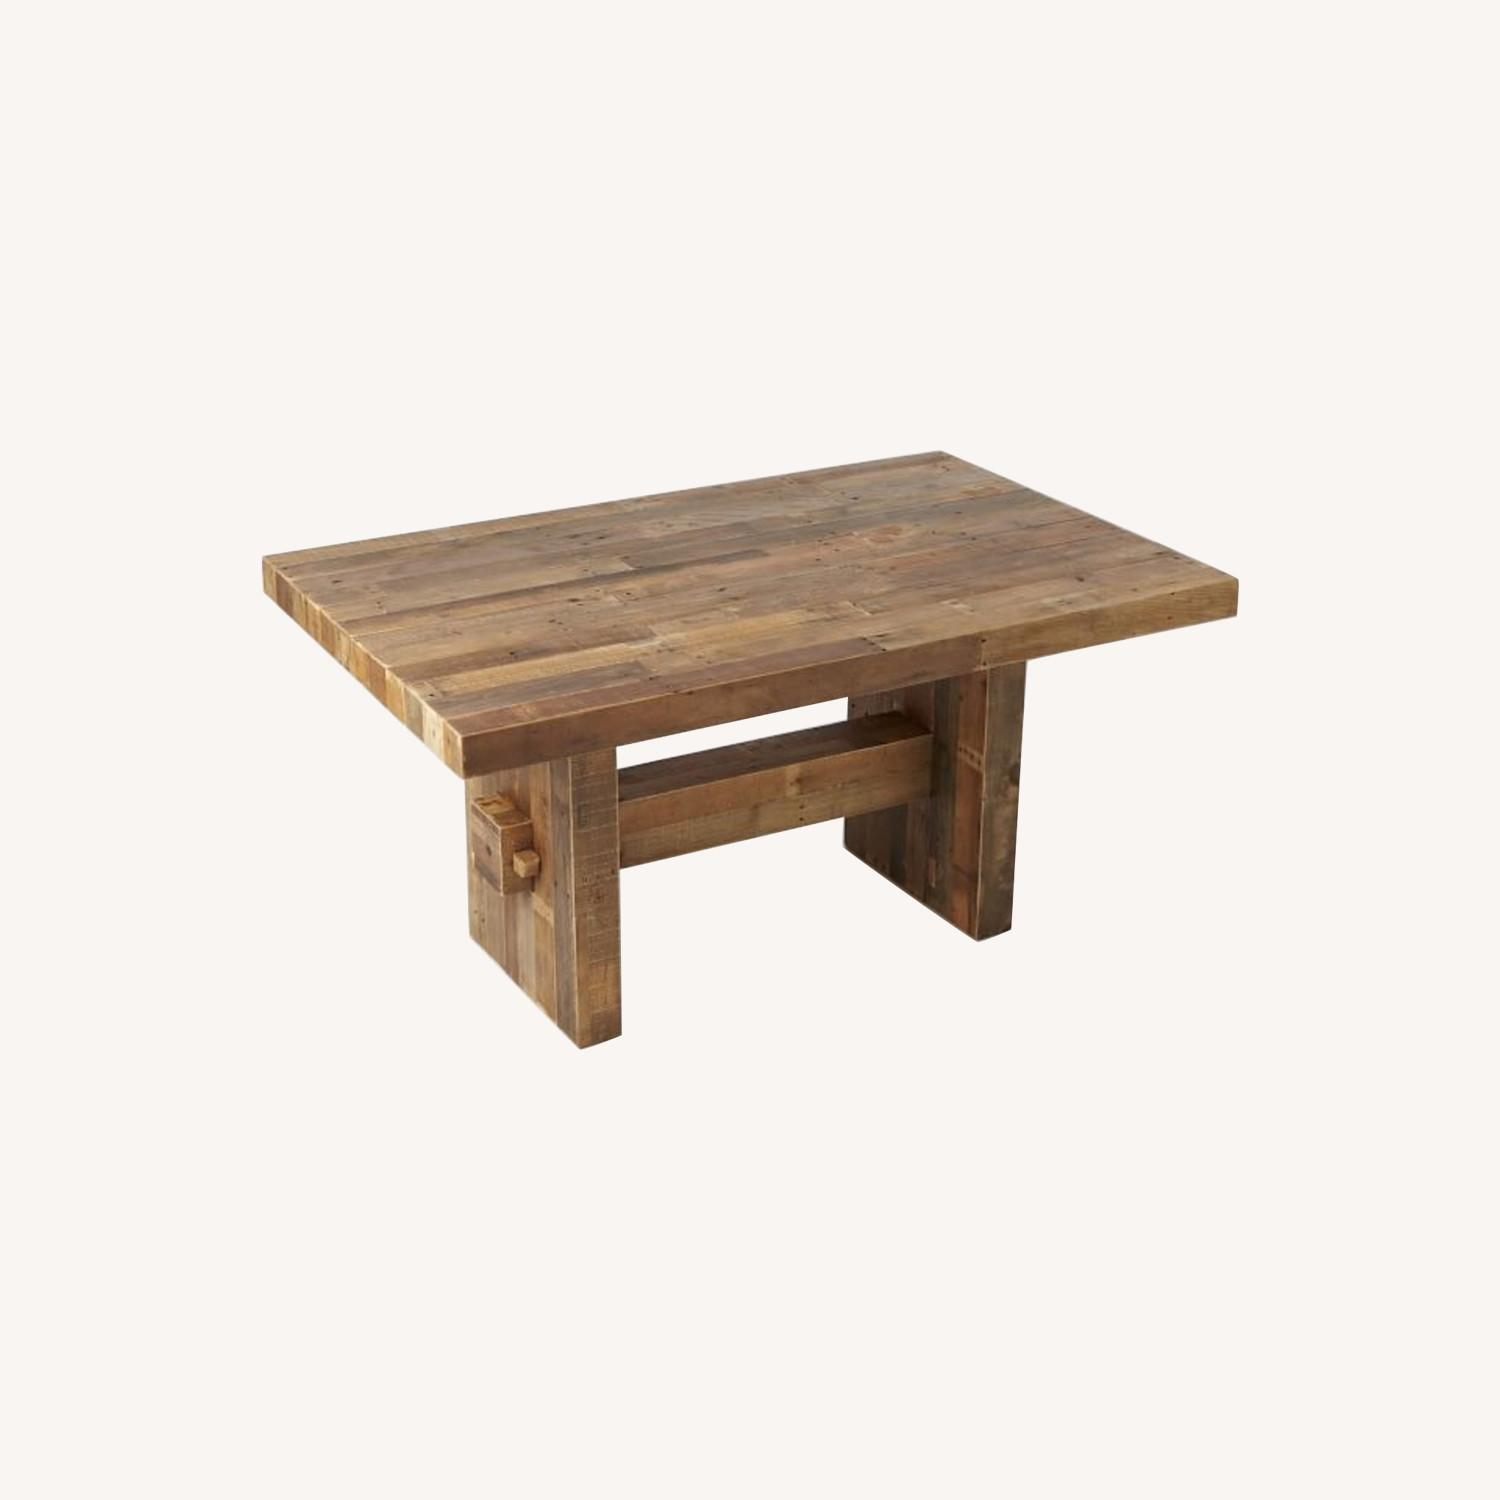 West Elm Emerson Reclaimed Wood Table - image-0